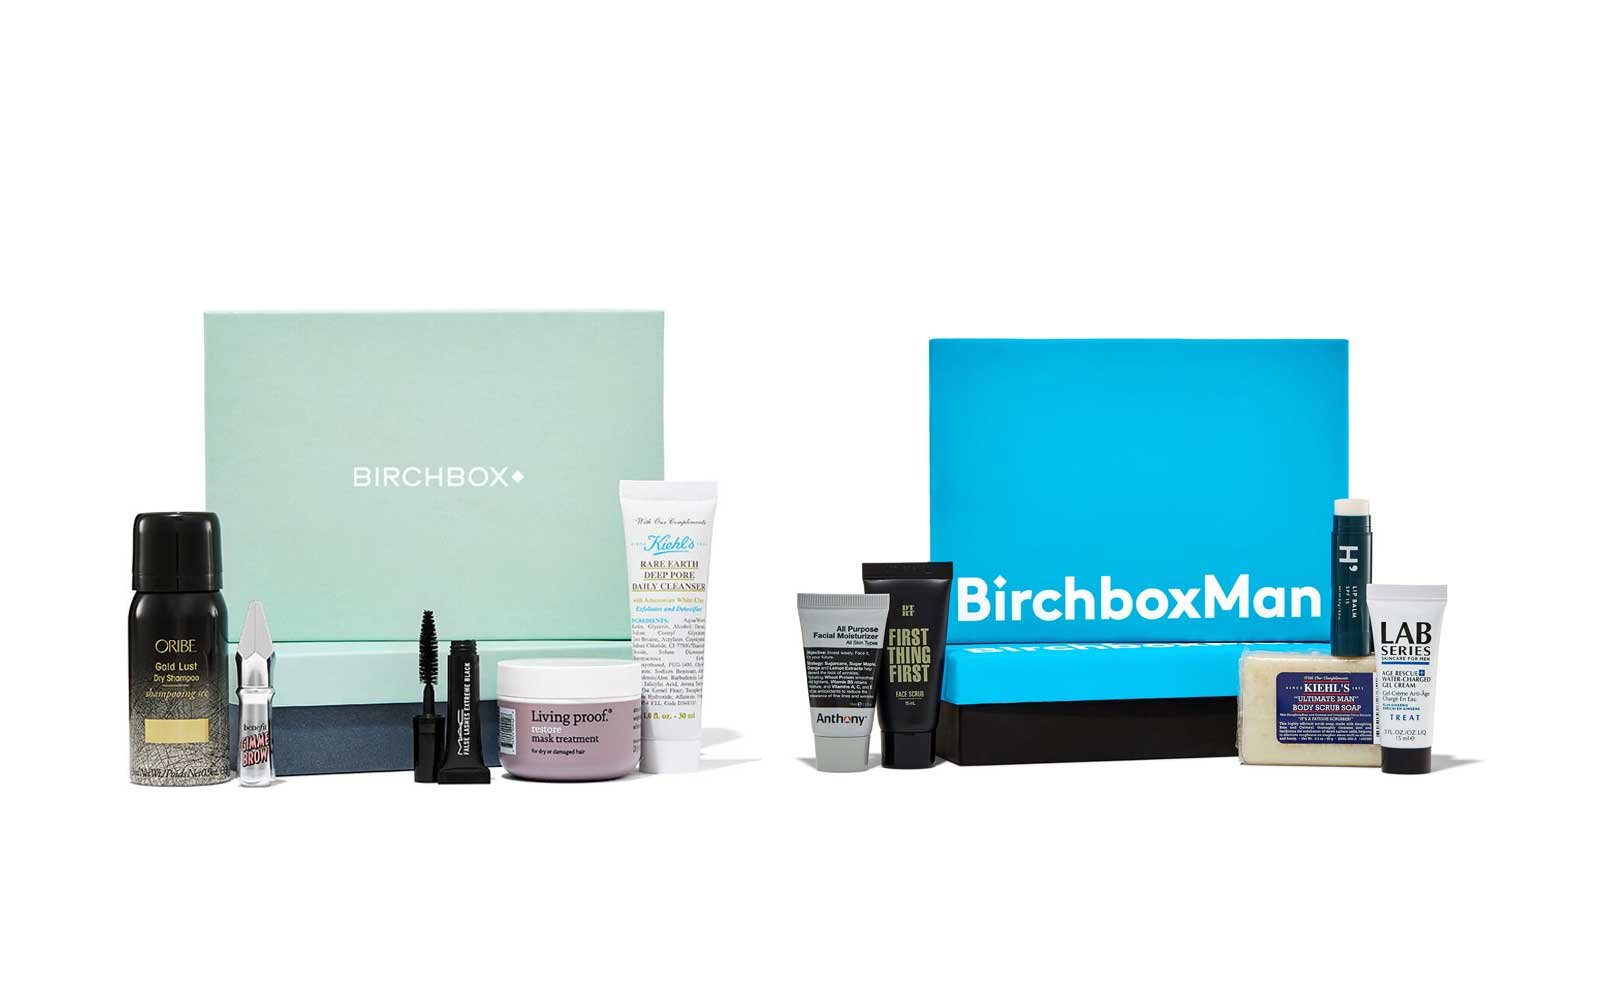 Birchbox Men's & Women's